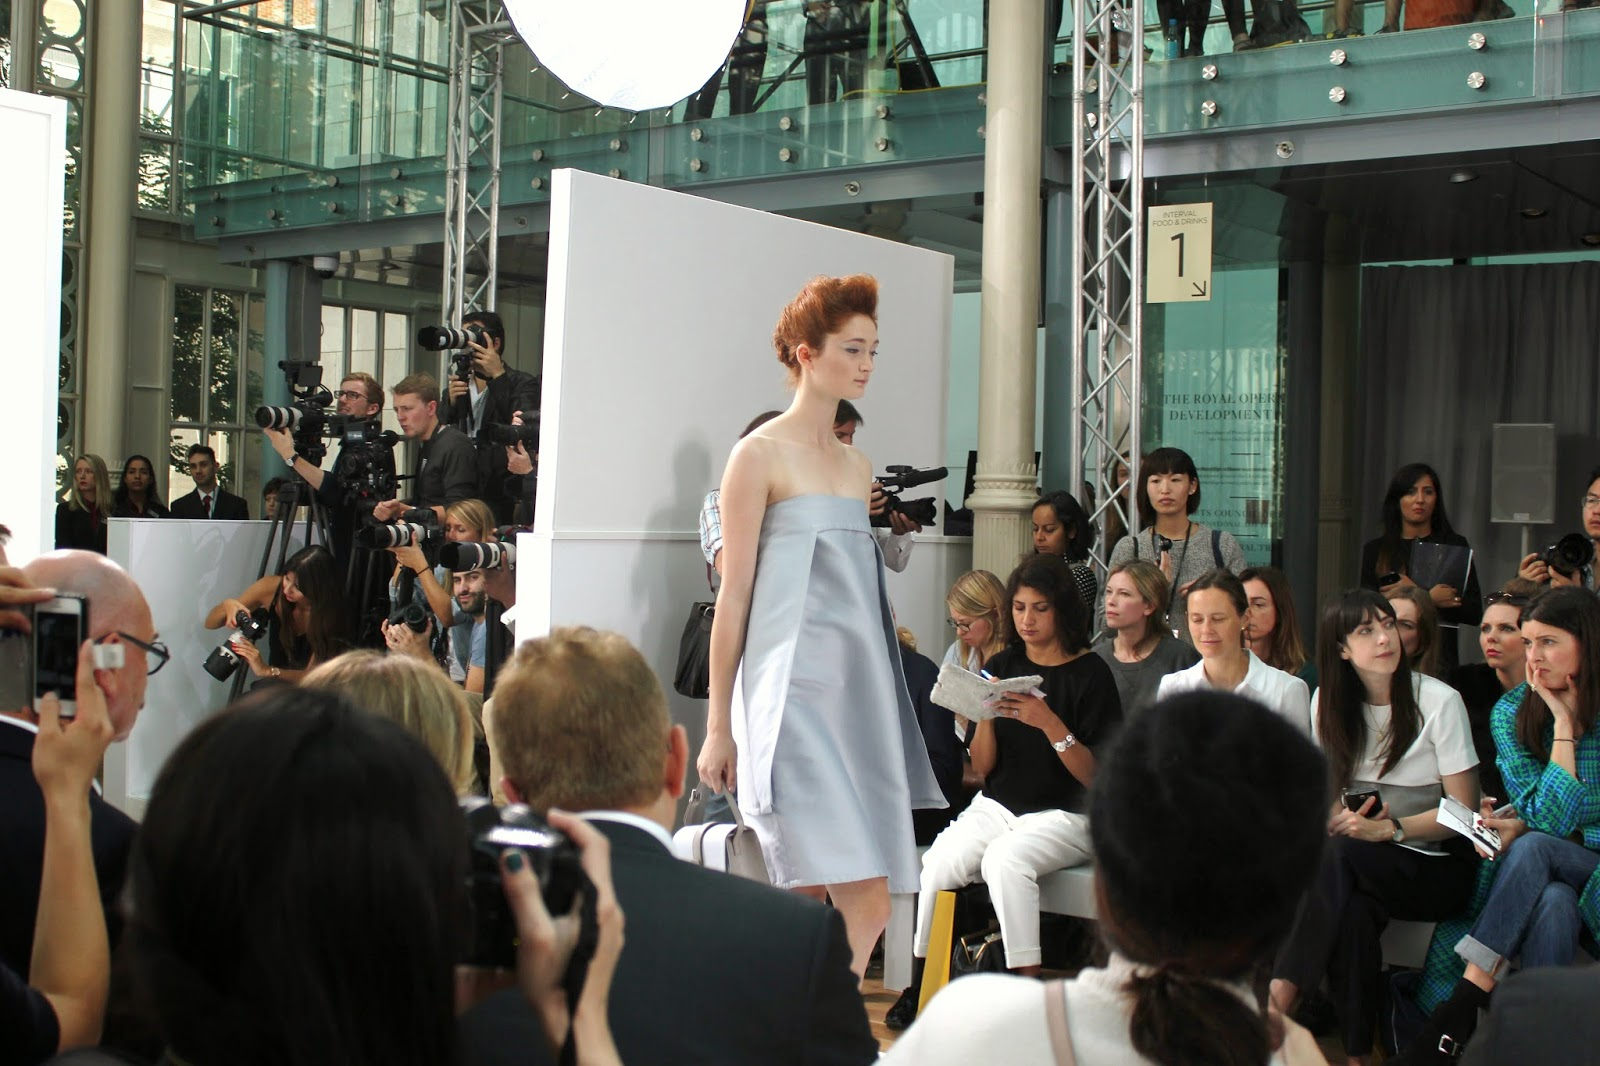 london-fashion-week-2014-lfw-DAKS-show-catwalk-spring-summer-2015-models-clothes-fashion-frow-royal-opera-house-dress